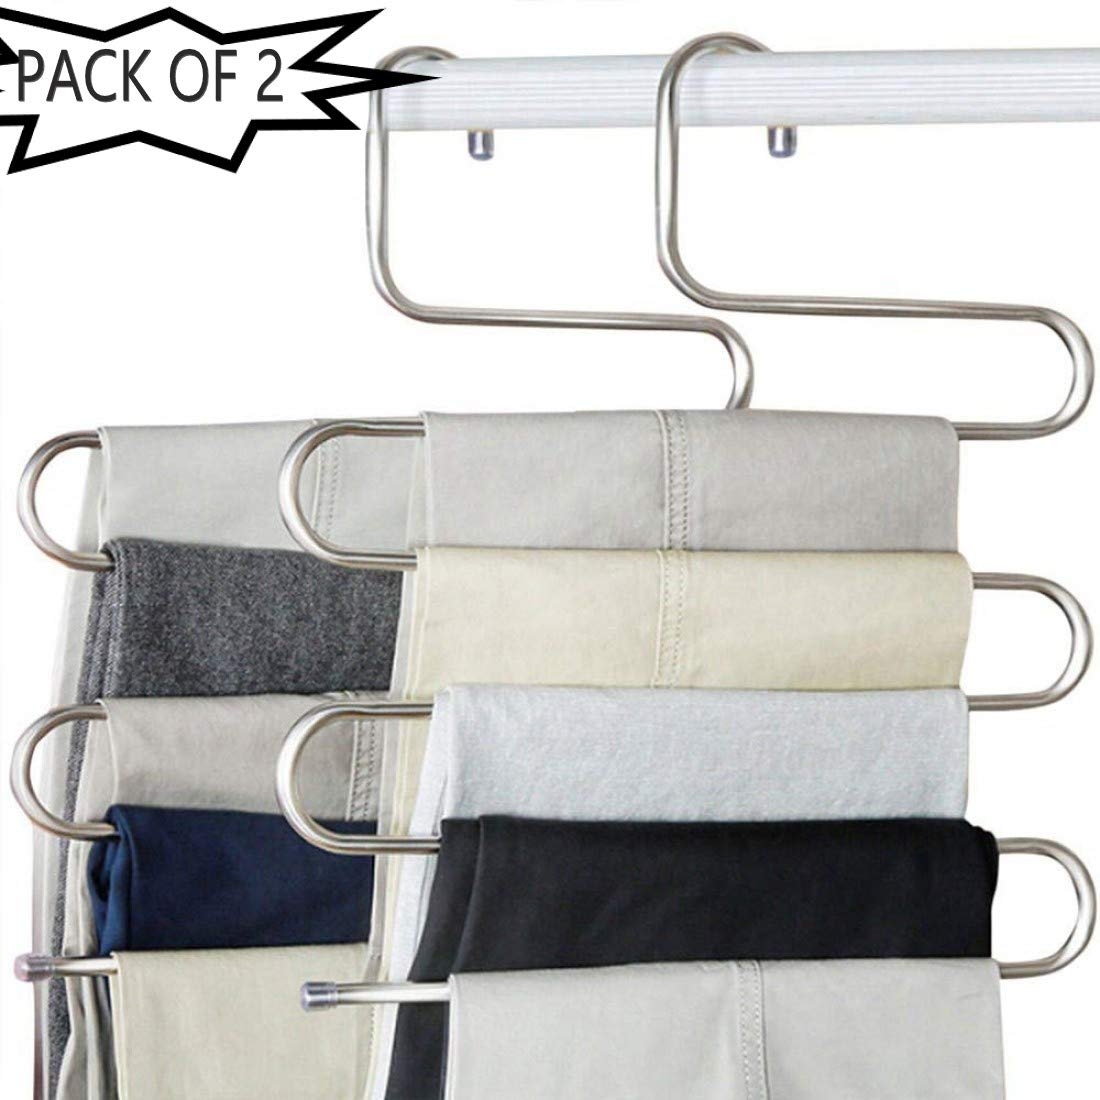 OxbOw Pants Hangers Non Slip Updated S-Shaped 5 Layers Hangers Closet Space Saver for Jeans Scarf Tie Clothes (2)